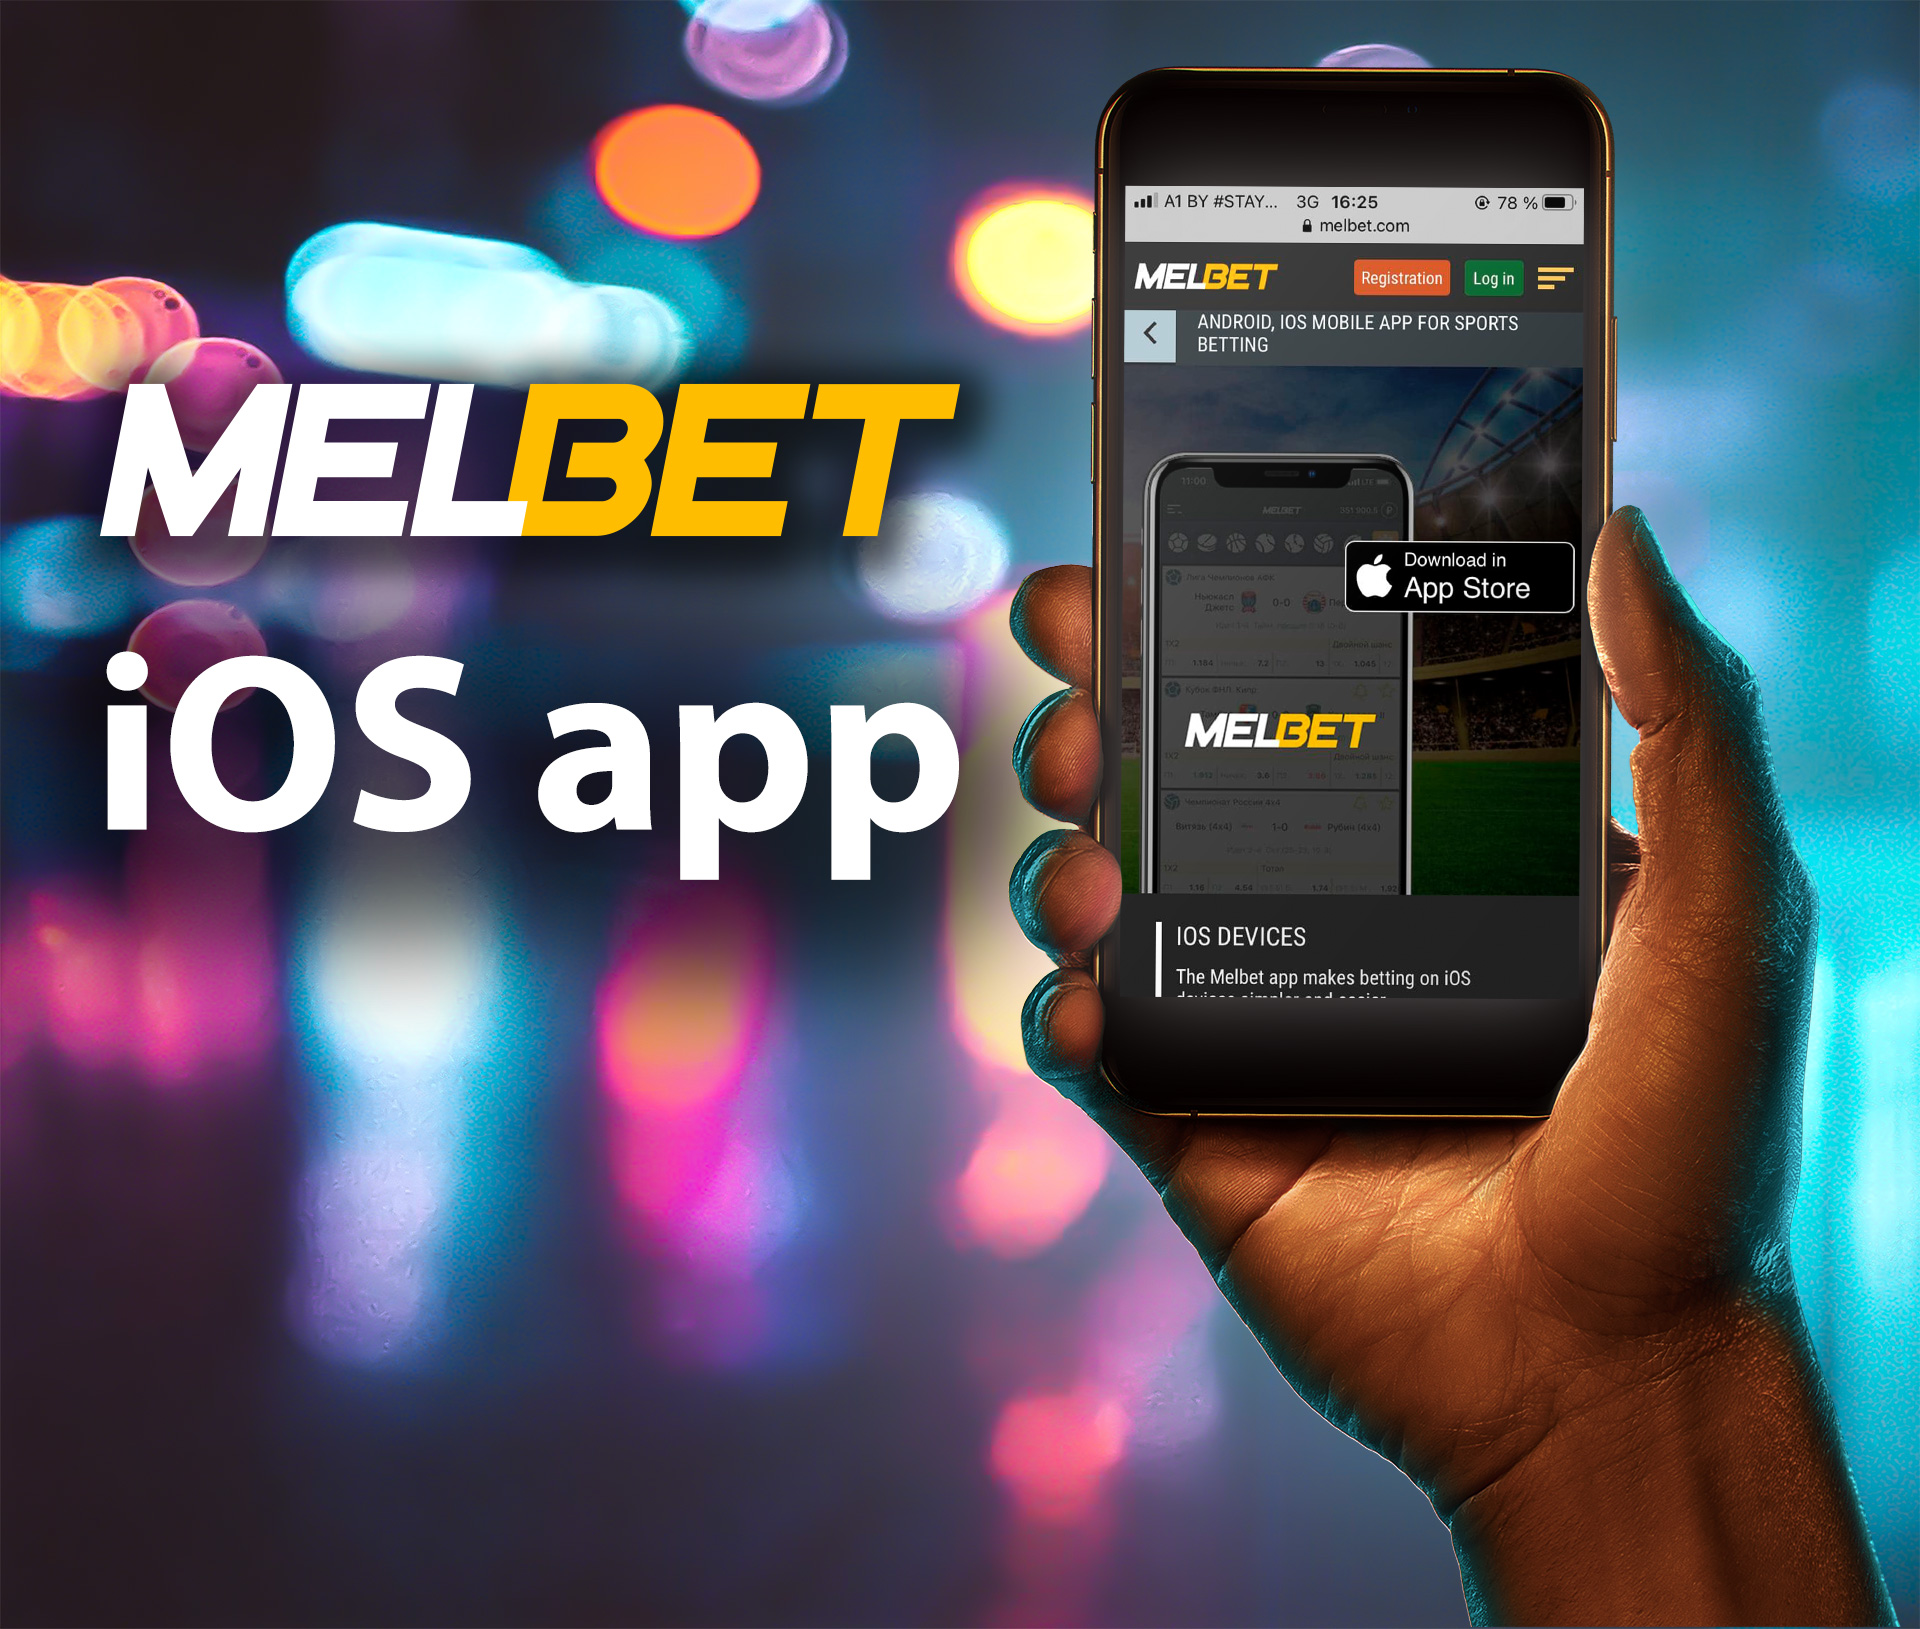 You can also install the Melbet app on your iPhone or iPad.